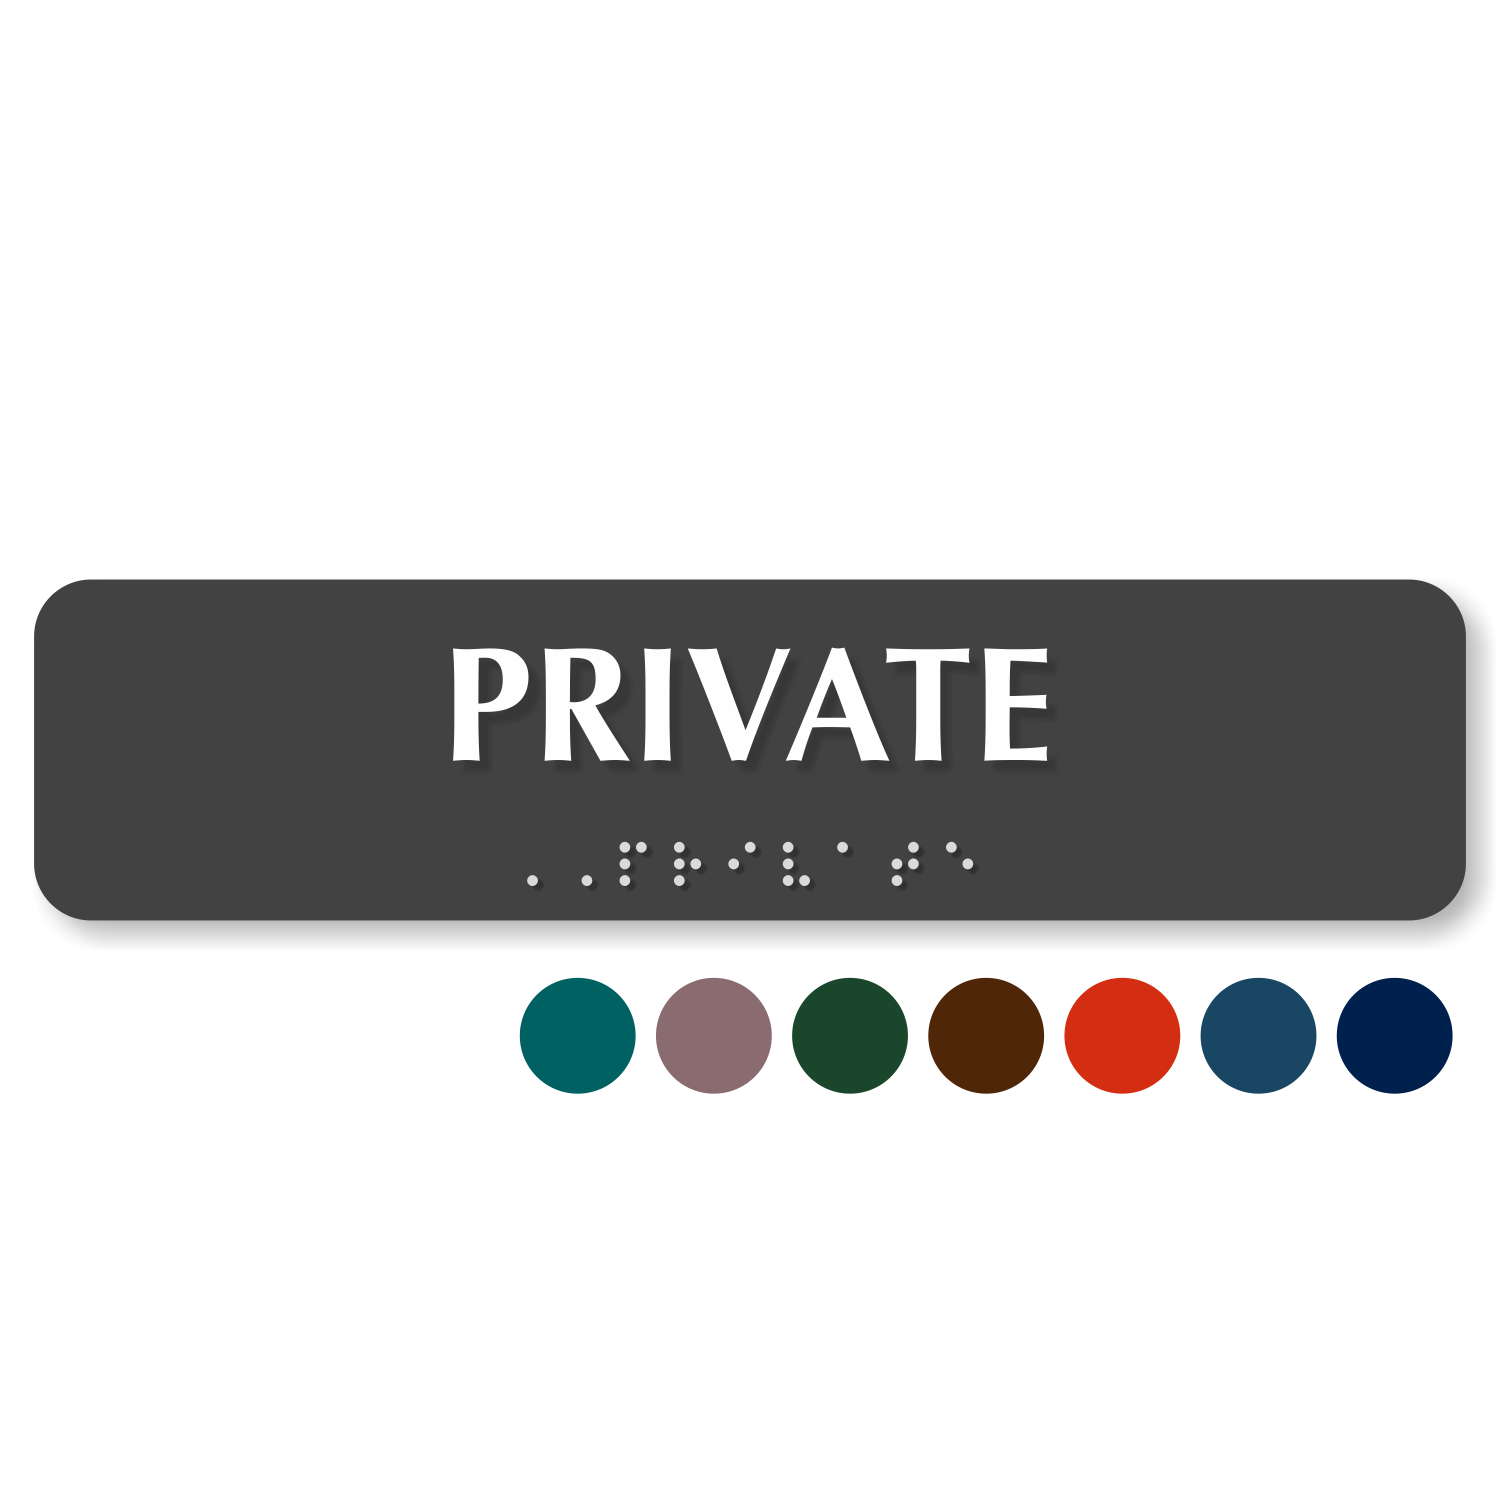 private room signs no soliciting slider signs for privacy